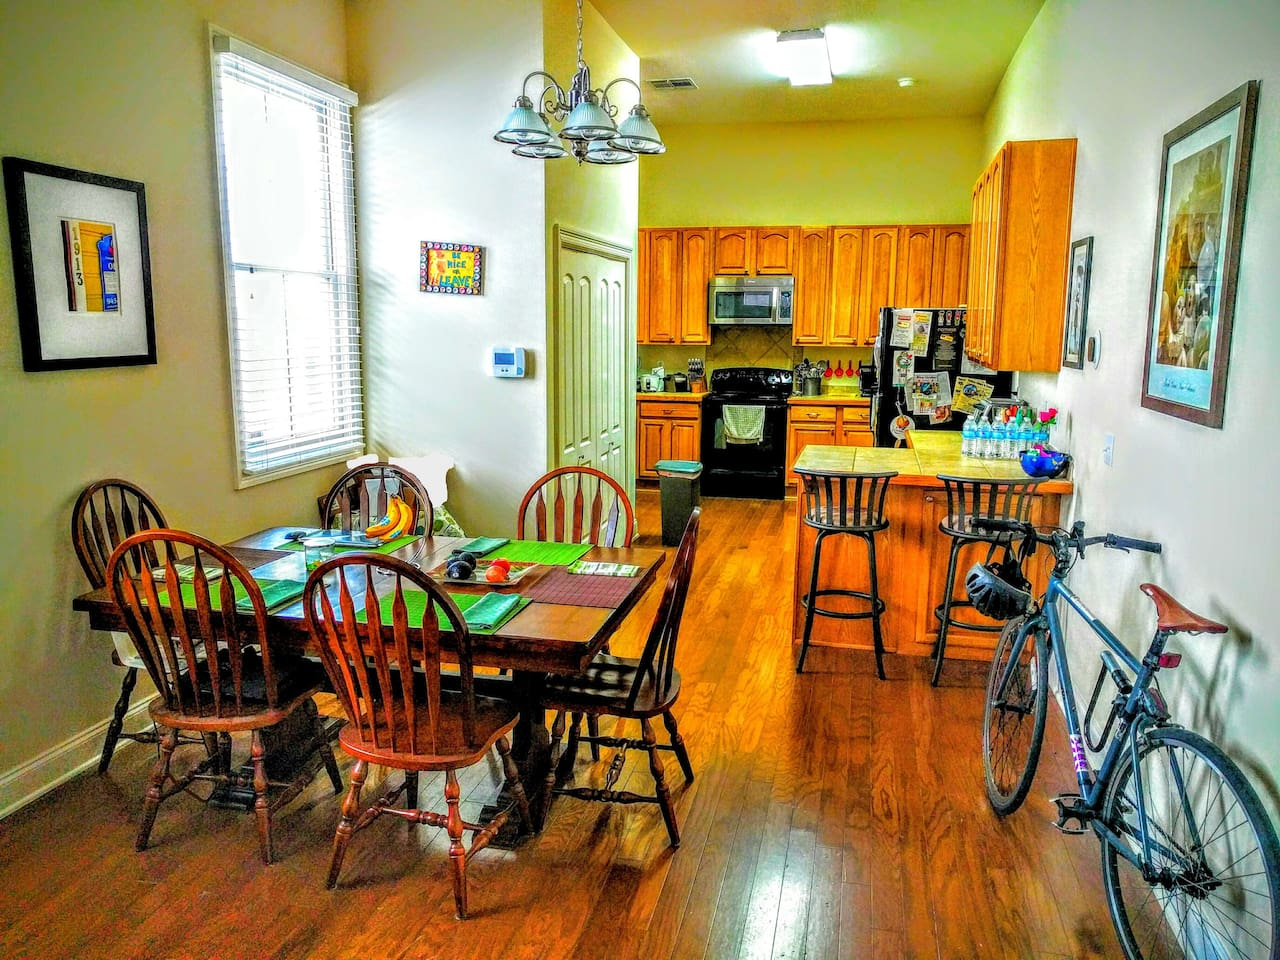 Fully stocked kitchen, we just ask if you use any utensils/dishware to place them in the dishwasher.